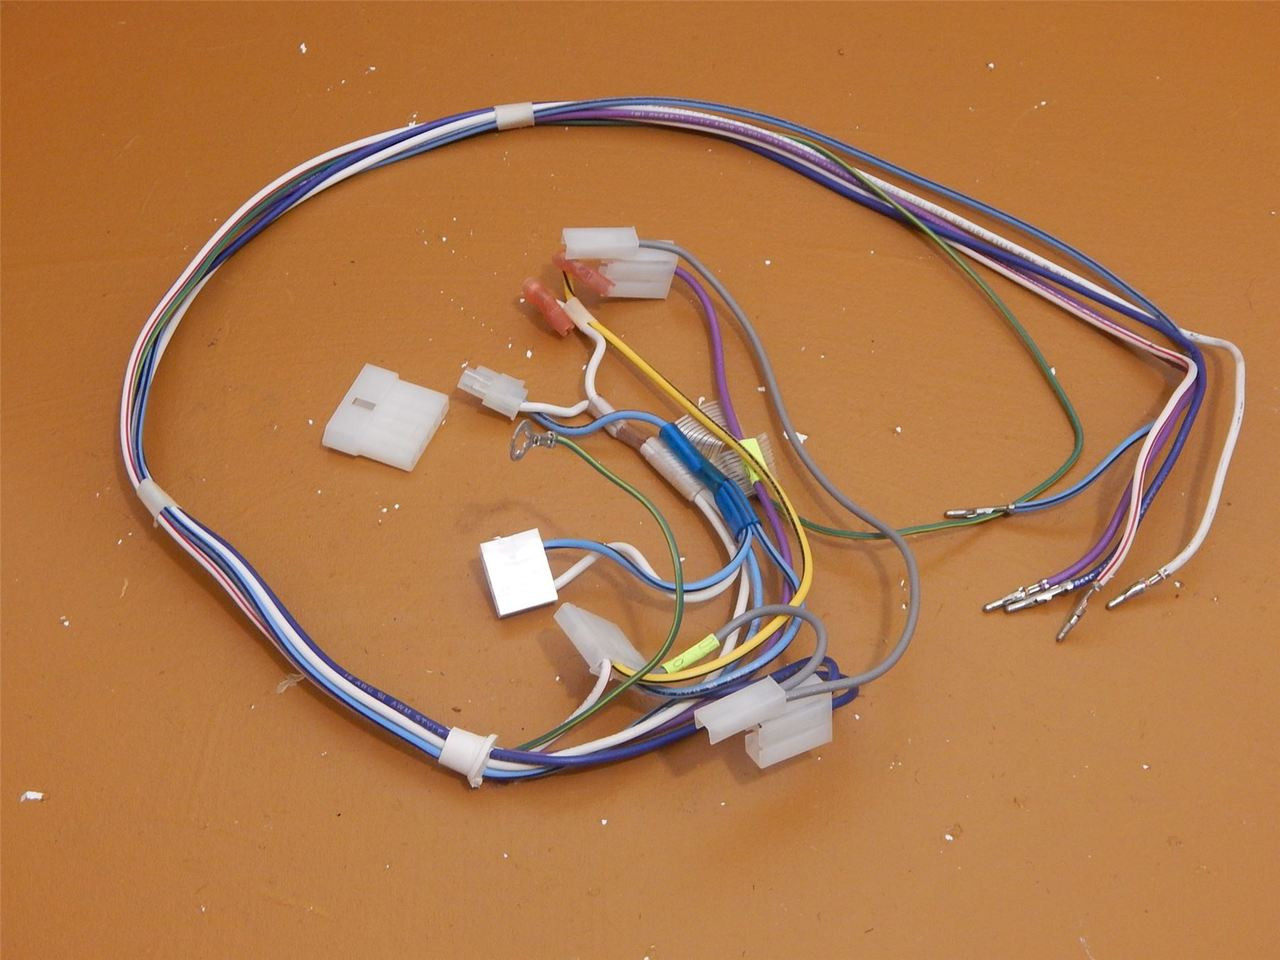 whirlpool side by side refrigerator ed5phexnq00 dispenser wire harness 2311641 ice cold beer appliance parts [ 1280 x 960 Pixel ]